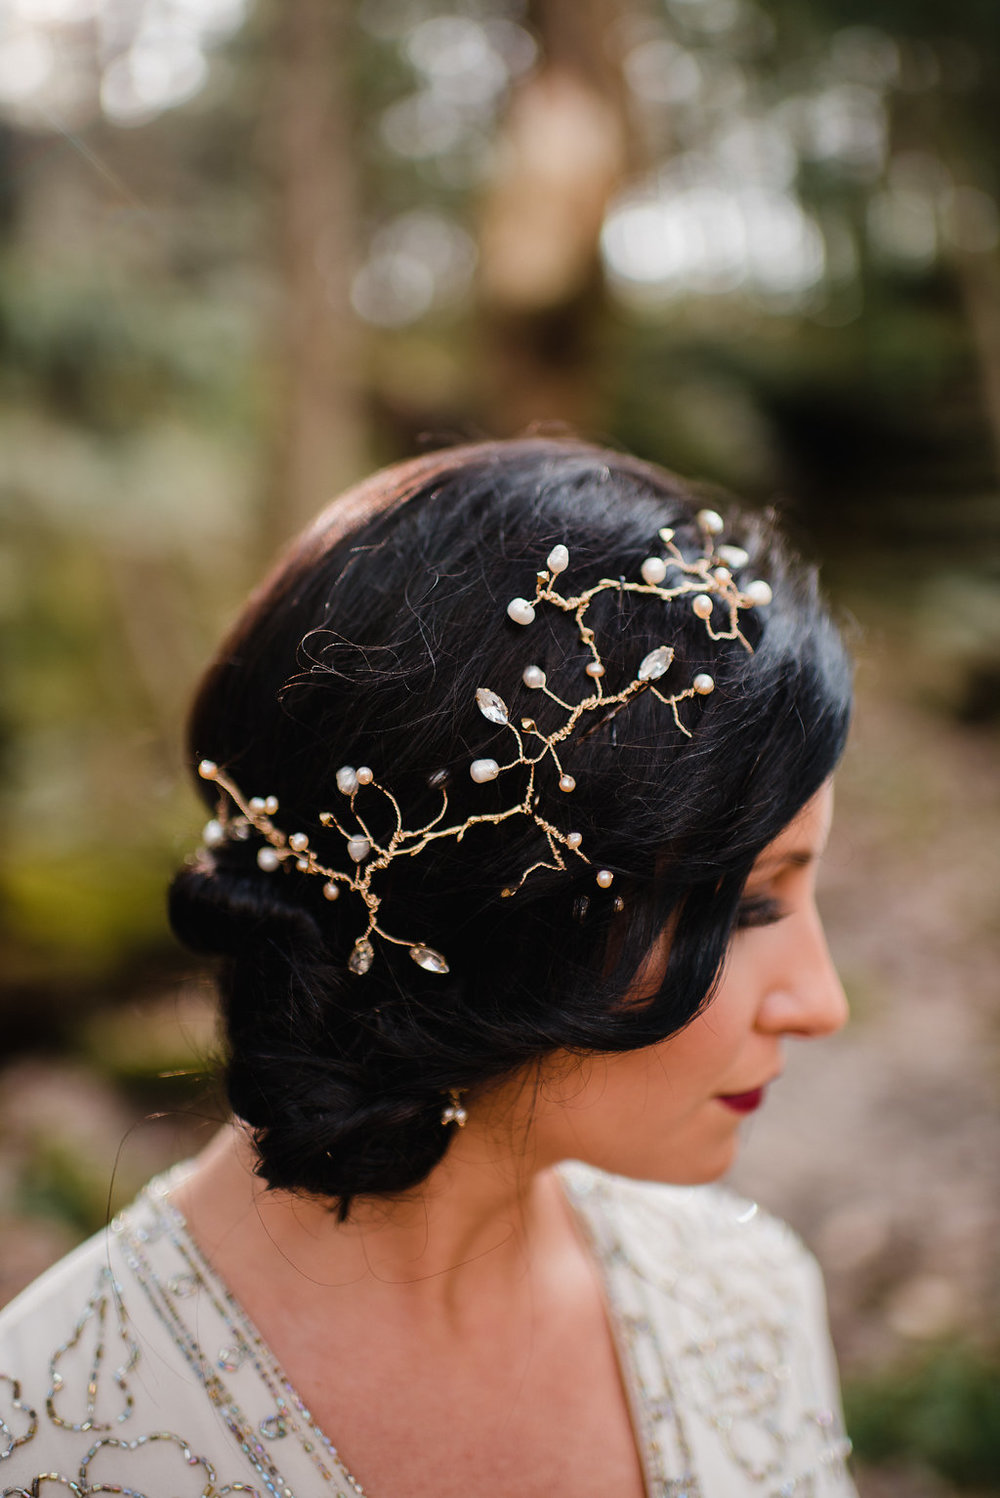 Handmade adornments for a modern yet timeless bridal look. -